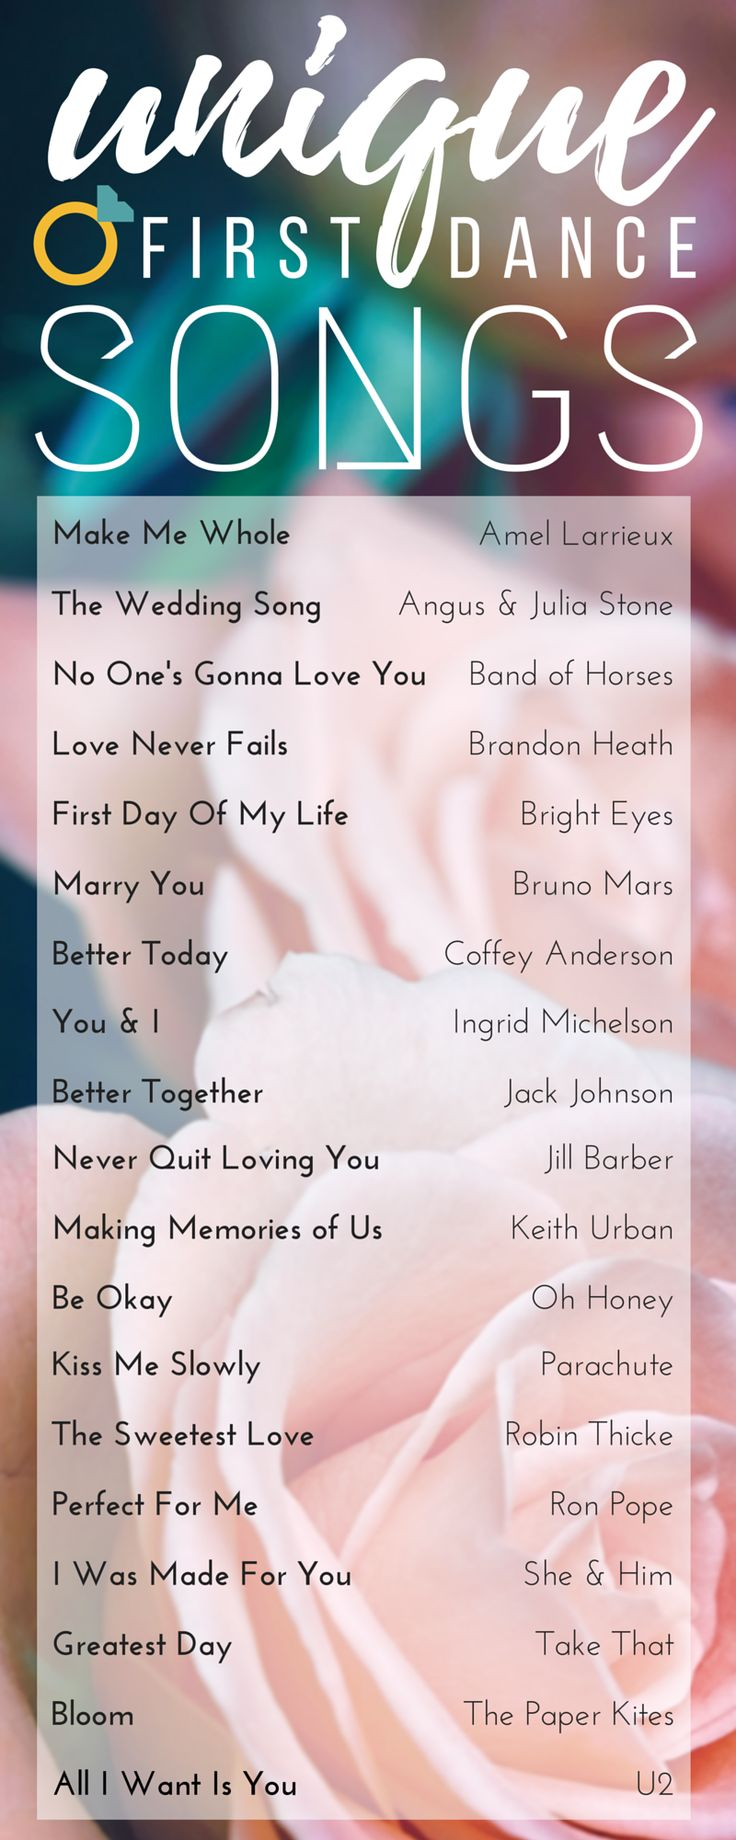 Our favorite unique songs that are perfect for the first dance!